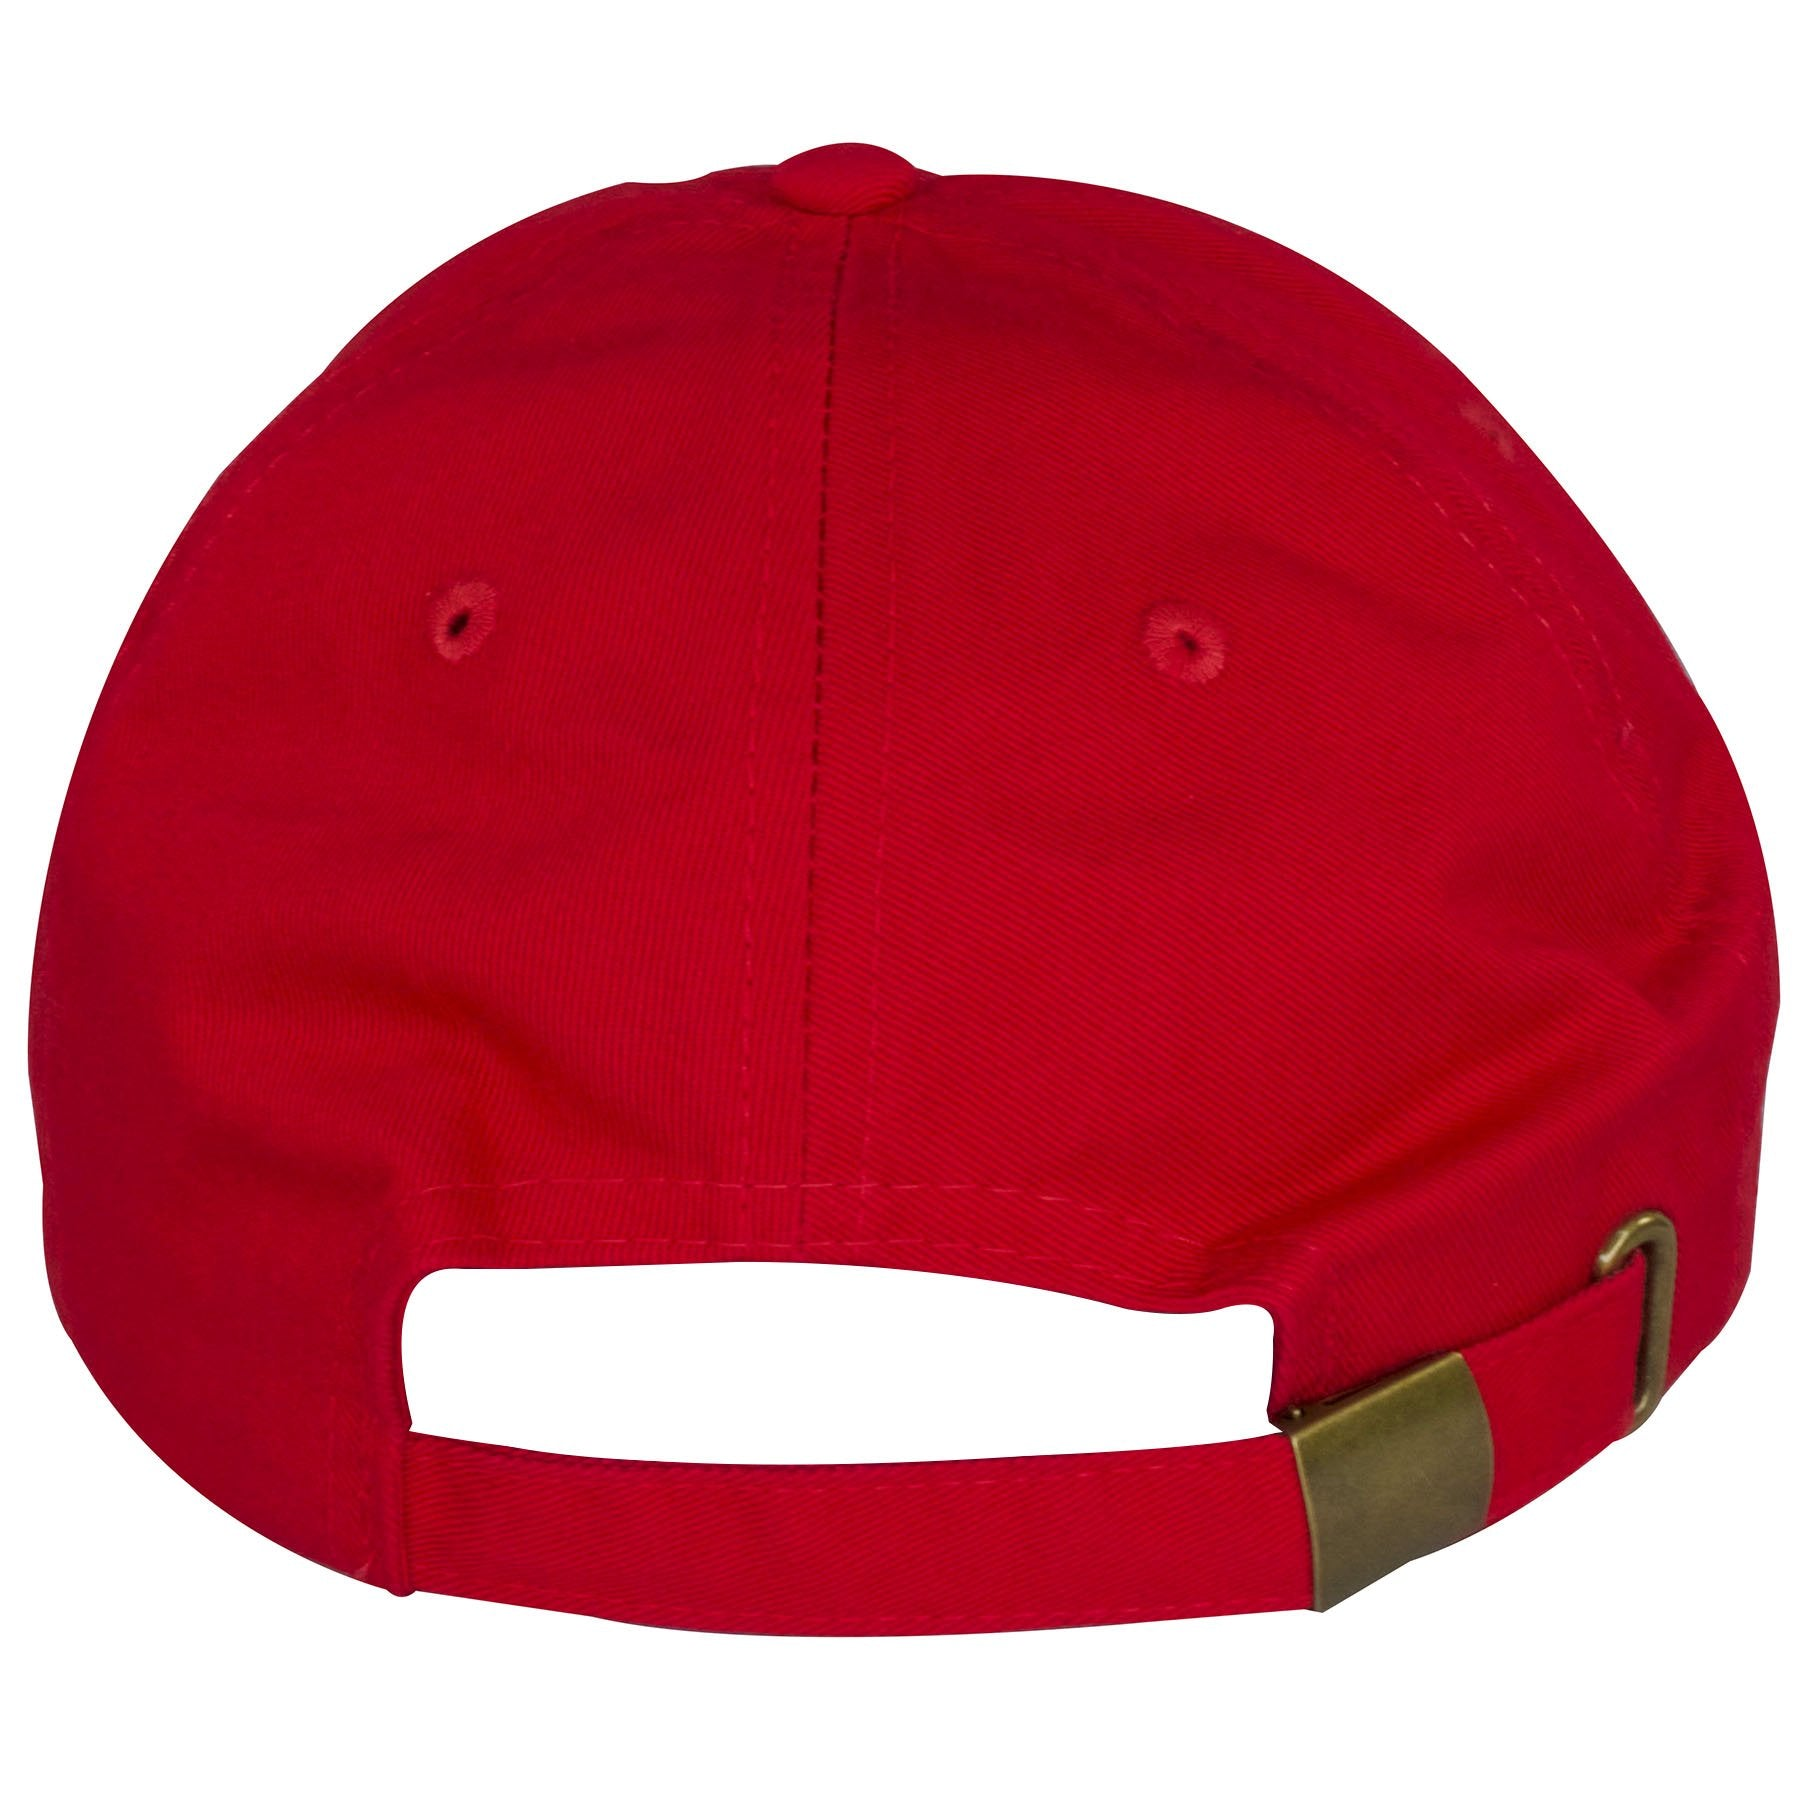 8611a039e996 authentic the back of this jordan 11 96 red hat shows an adjustable red  buckle strap